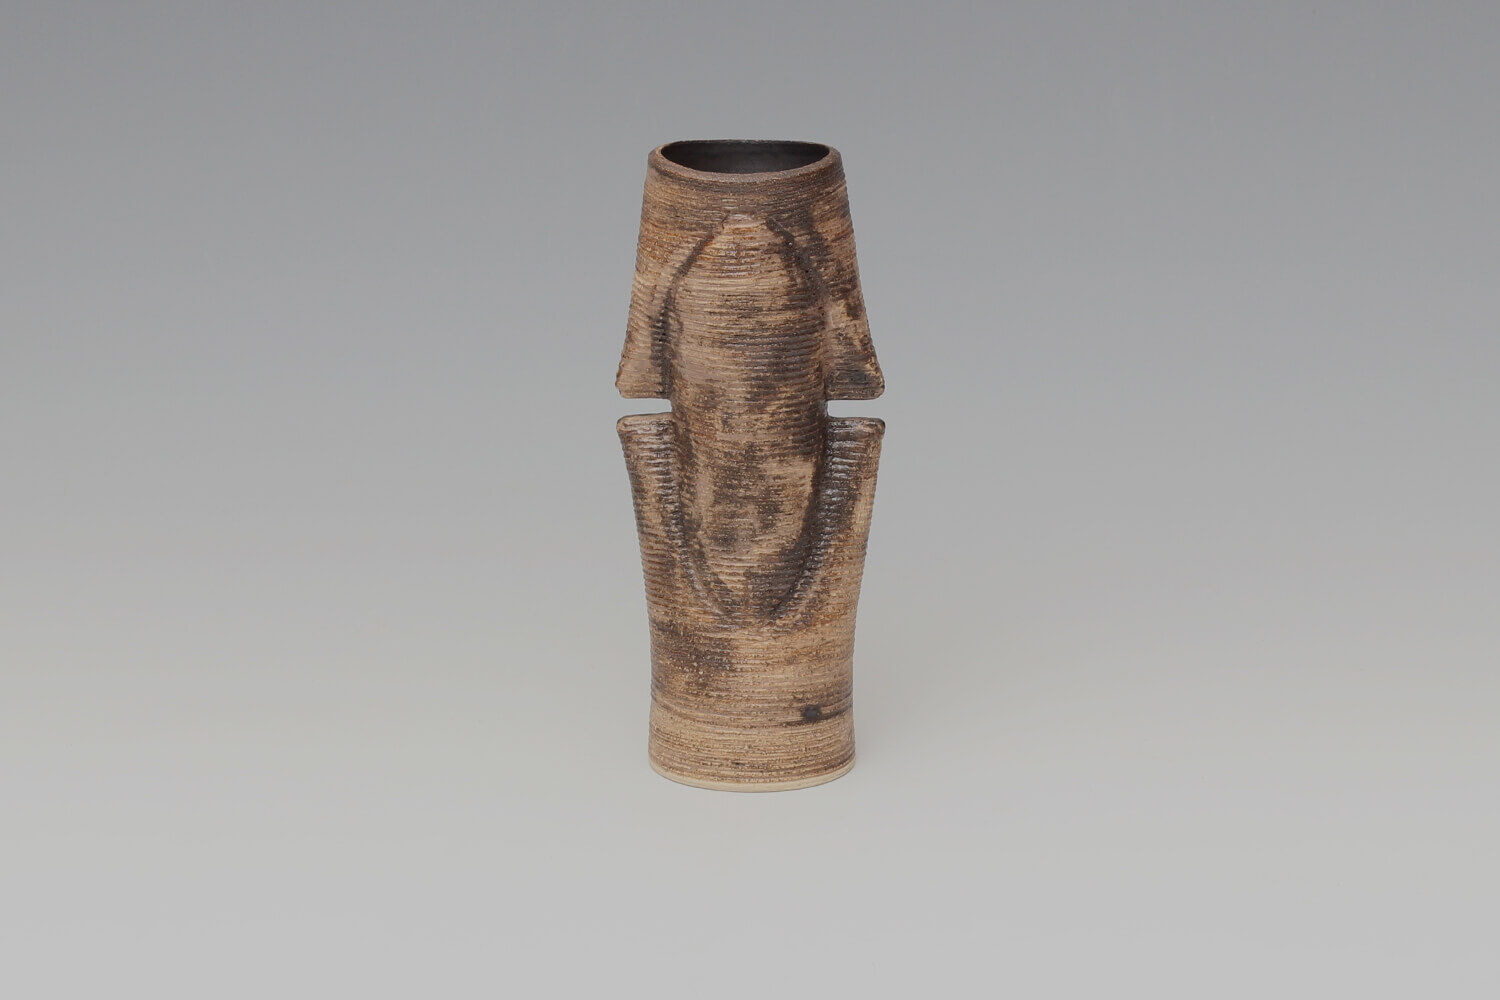 Chris Carter Ceramic Double Totemic Form 149